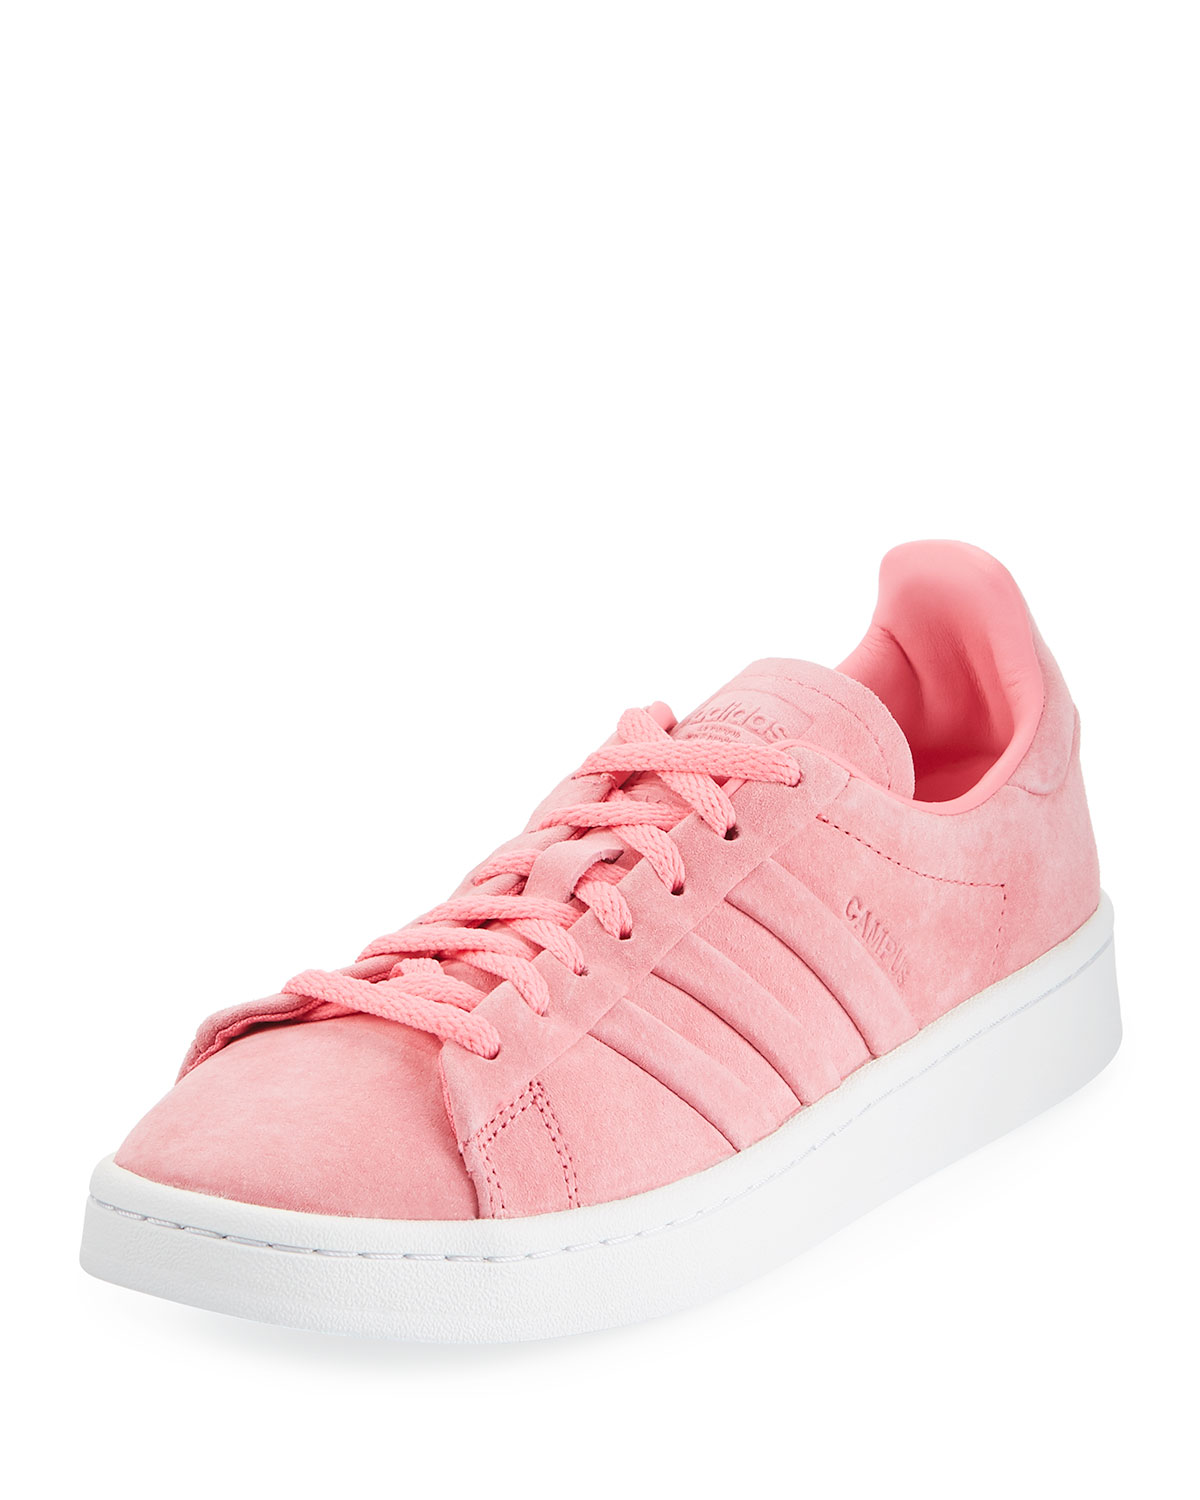 6769bd1a485e Adidas Campus Stitch   Turn Suede Lace-Up Sneakers